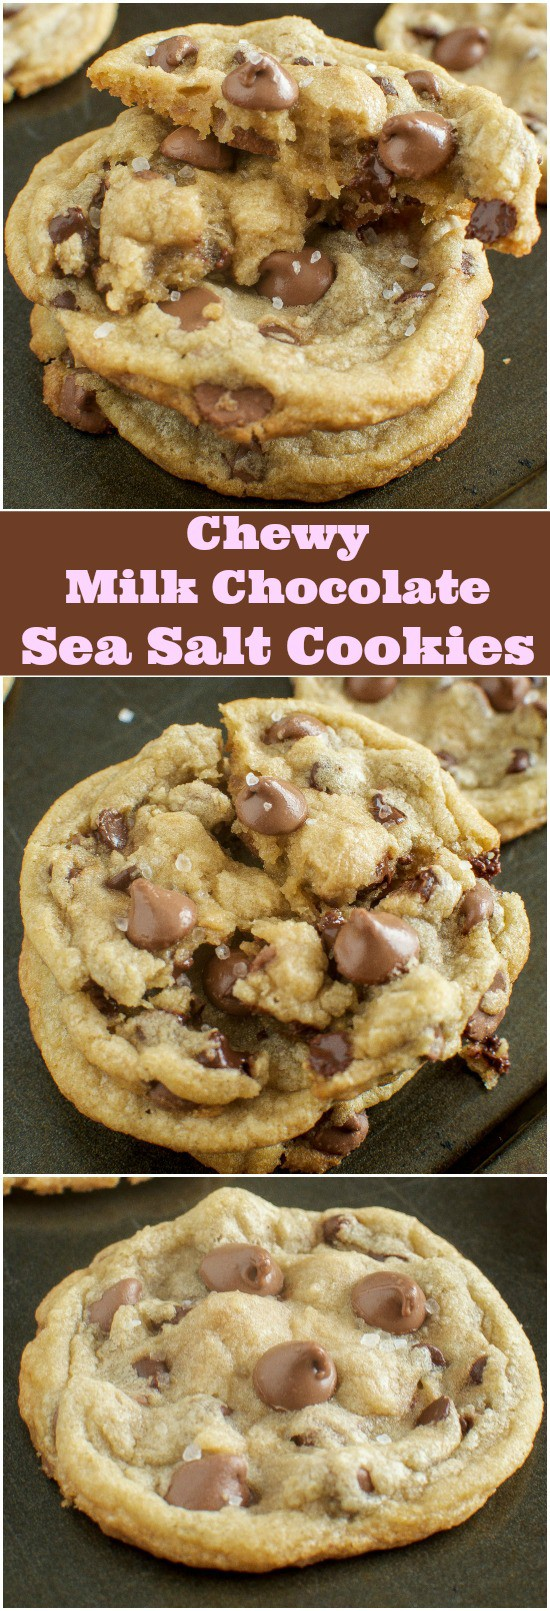 Chewy Milk Chocolate Sea Salt Cookies Page 2 Of 2 Back